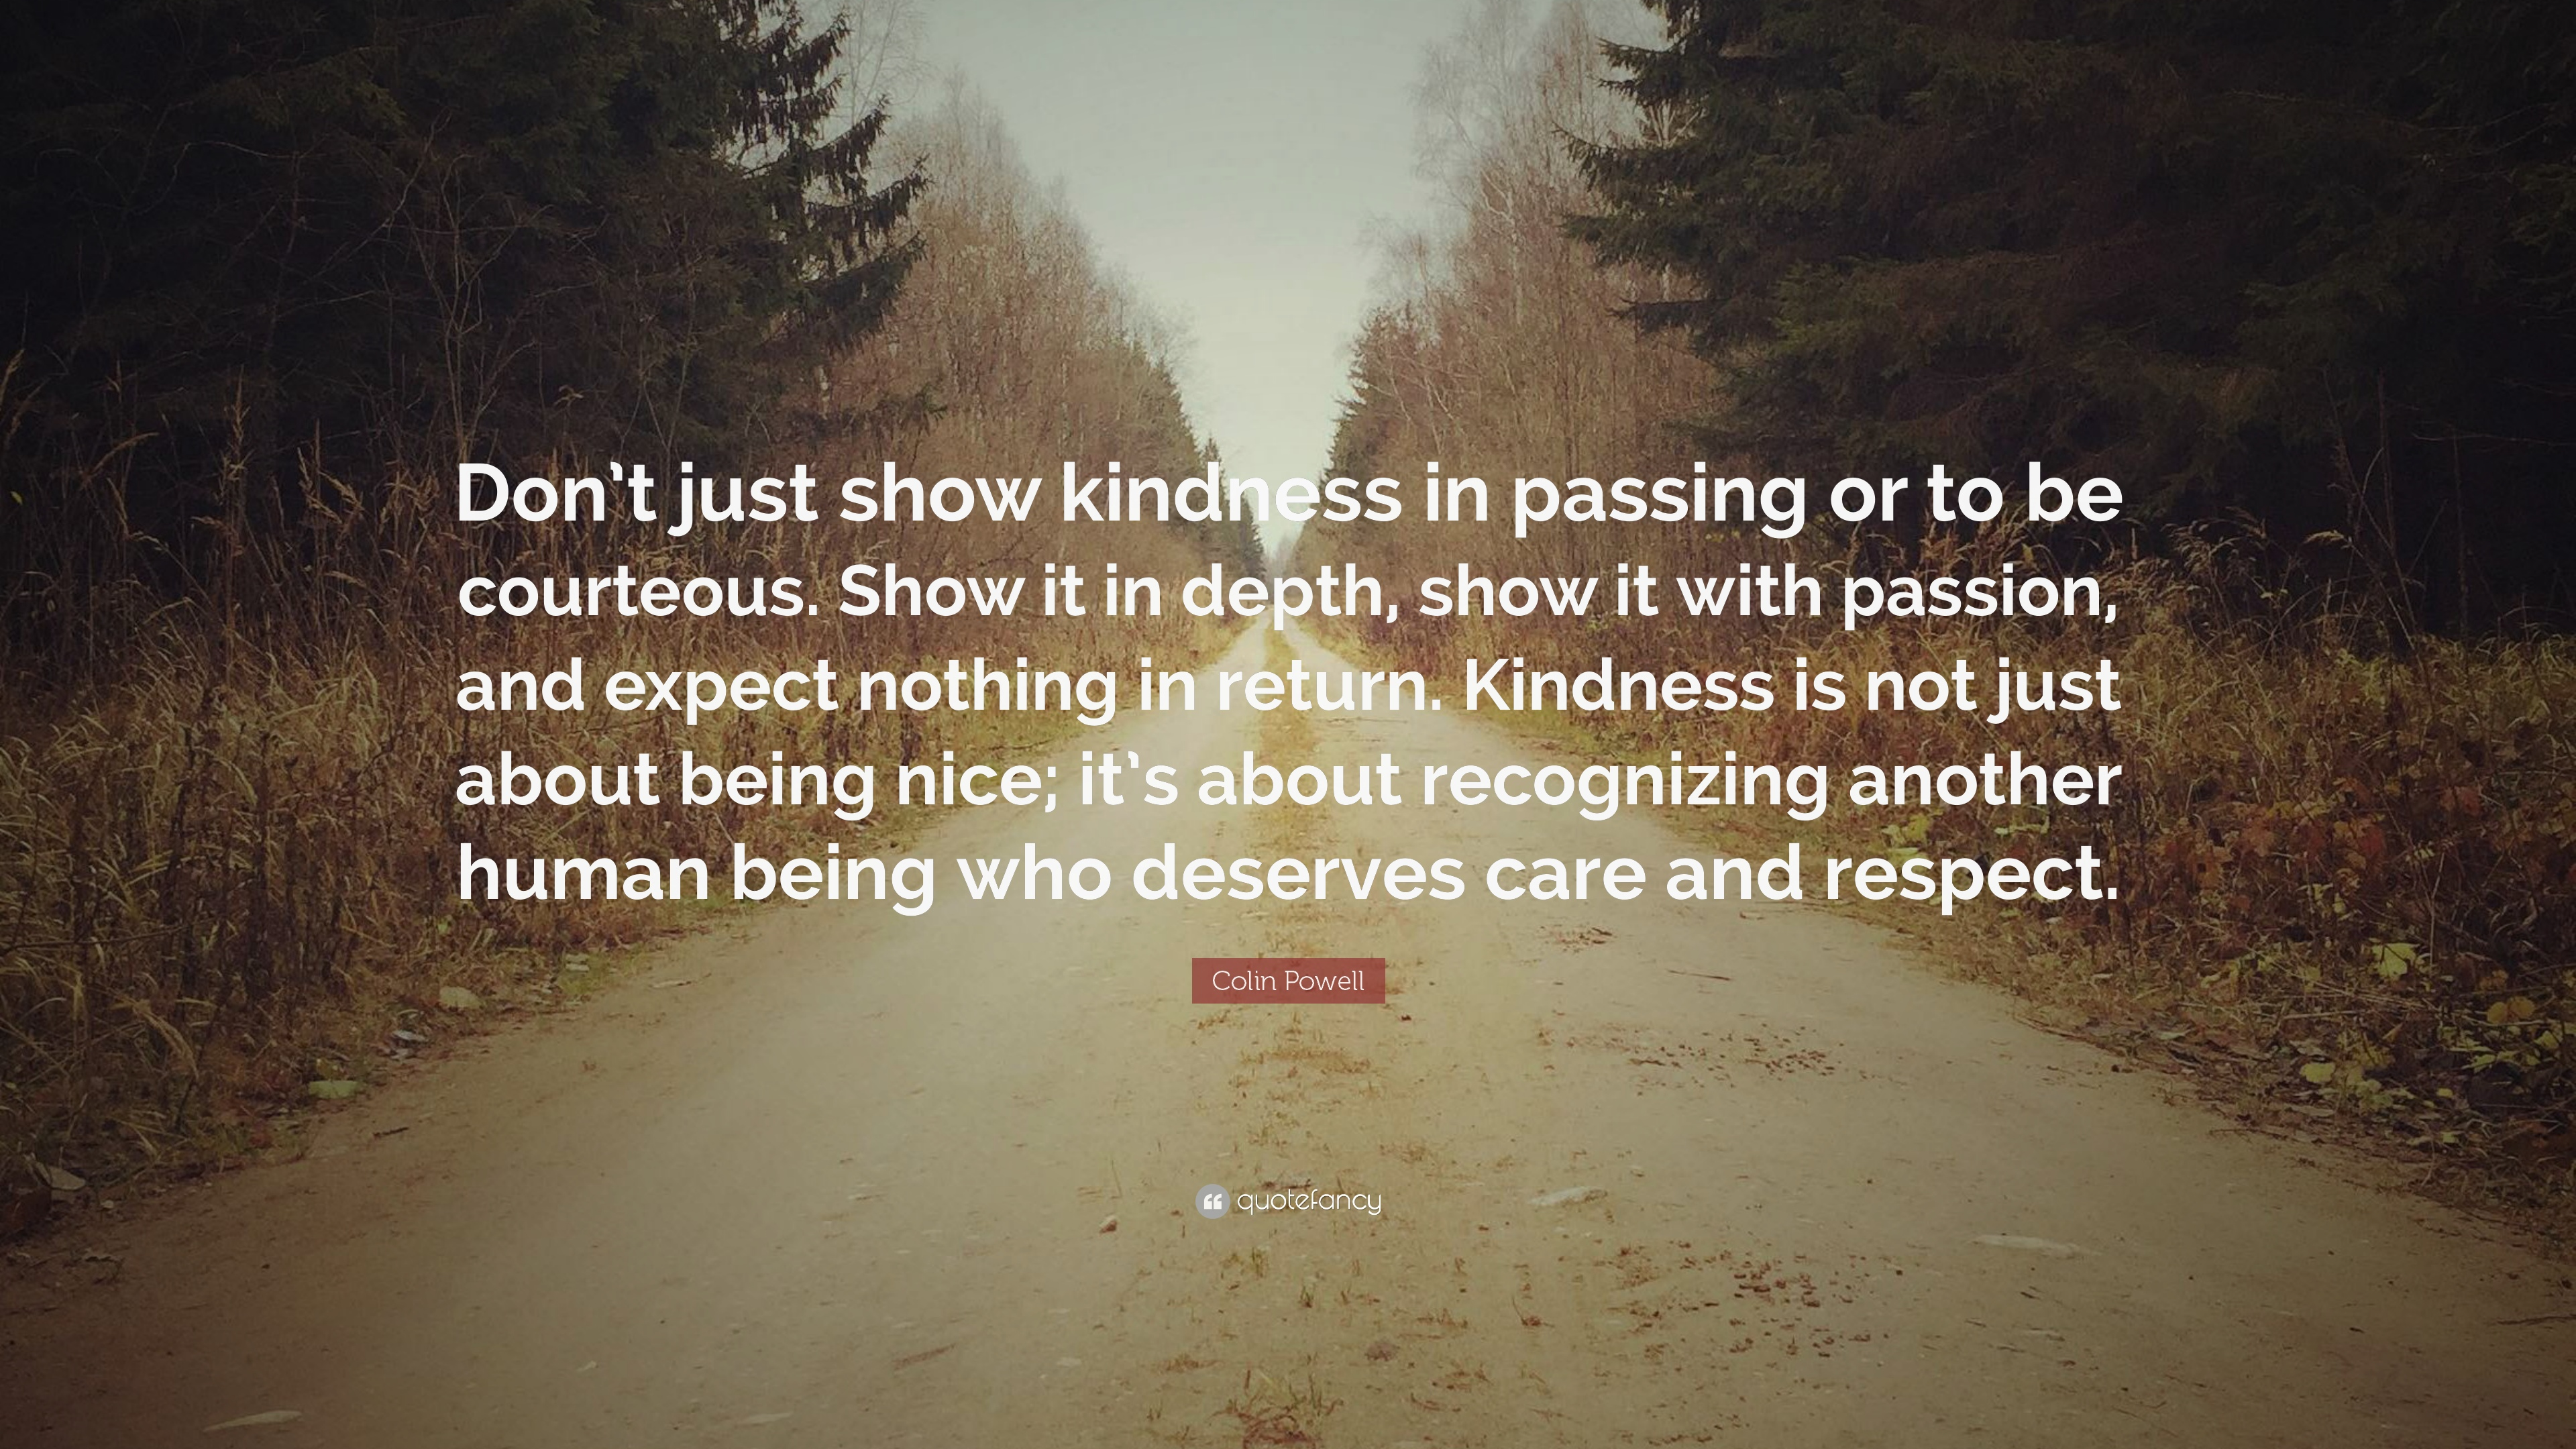 Nice Wallpapers With Inspiring Quotes Colin Powell Quote Don T Just Show Kindness In Passing